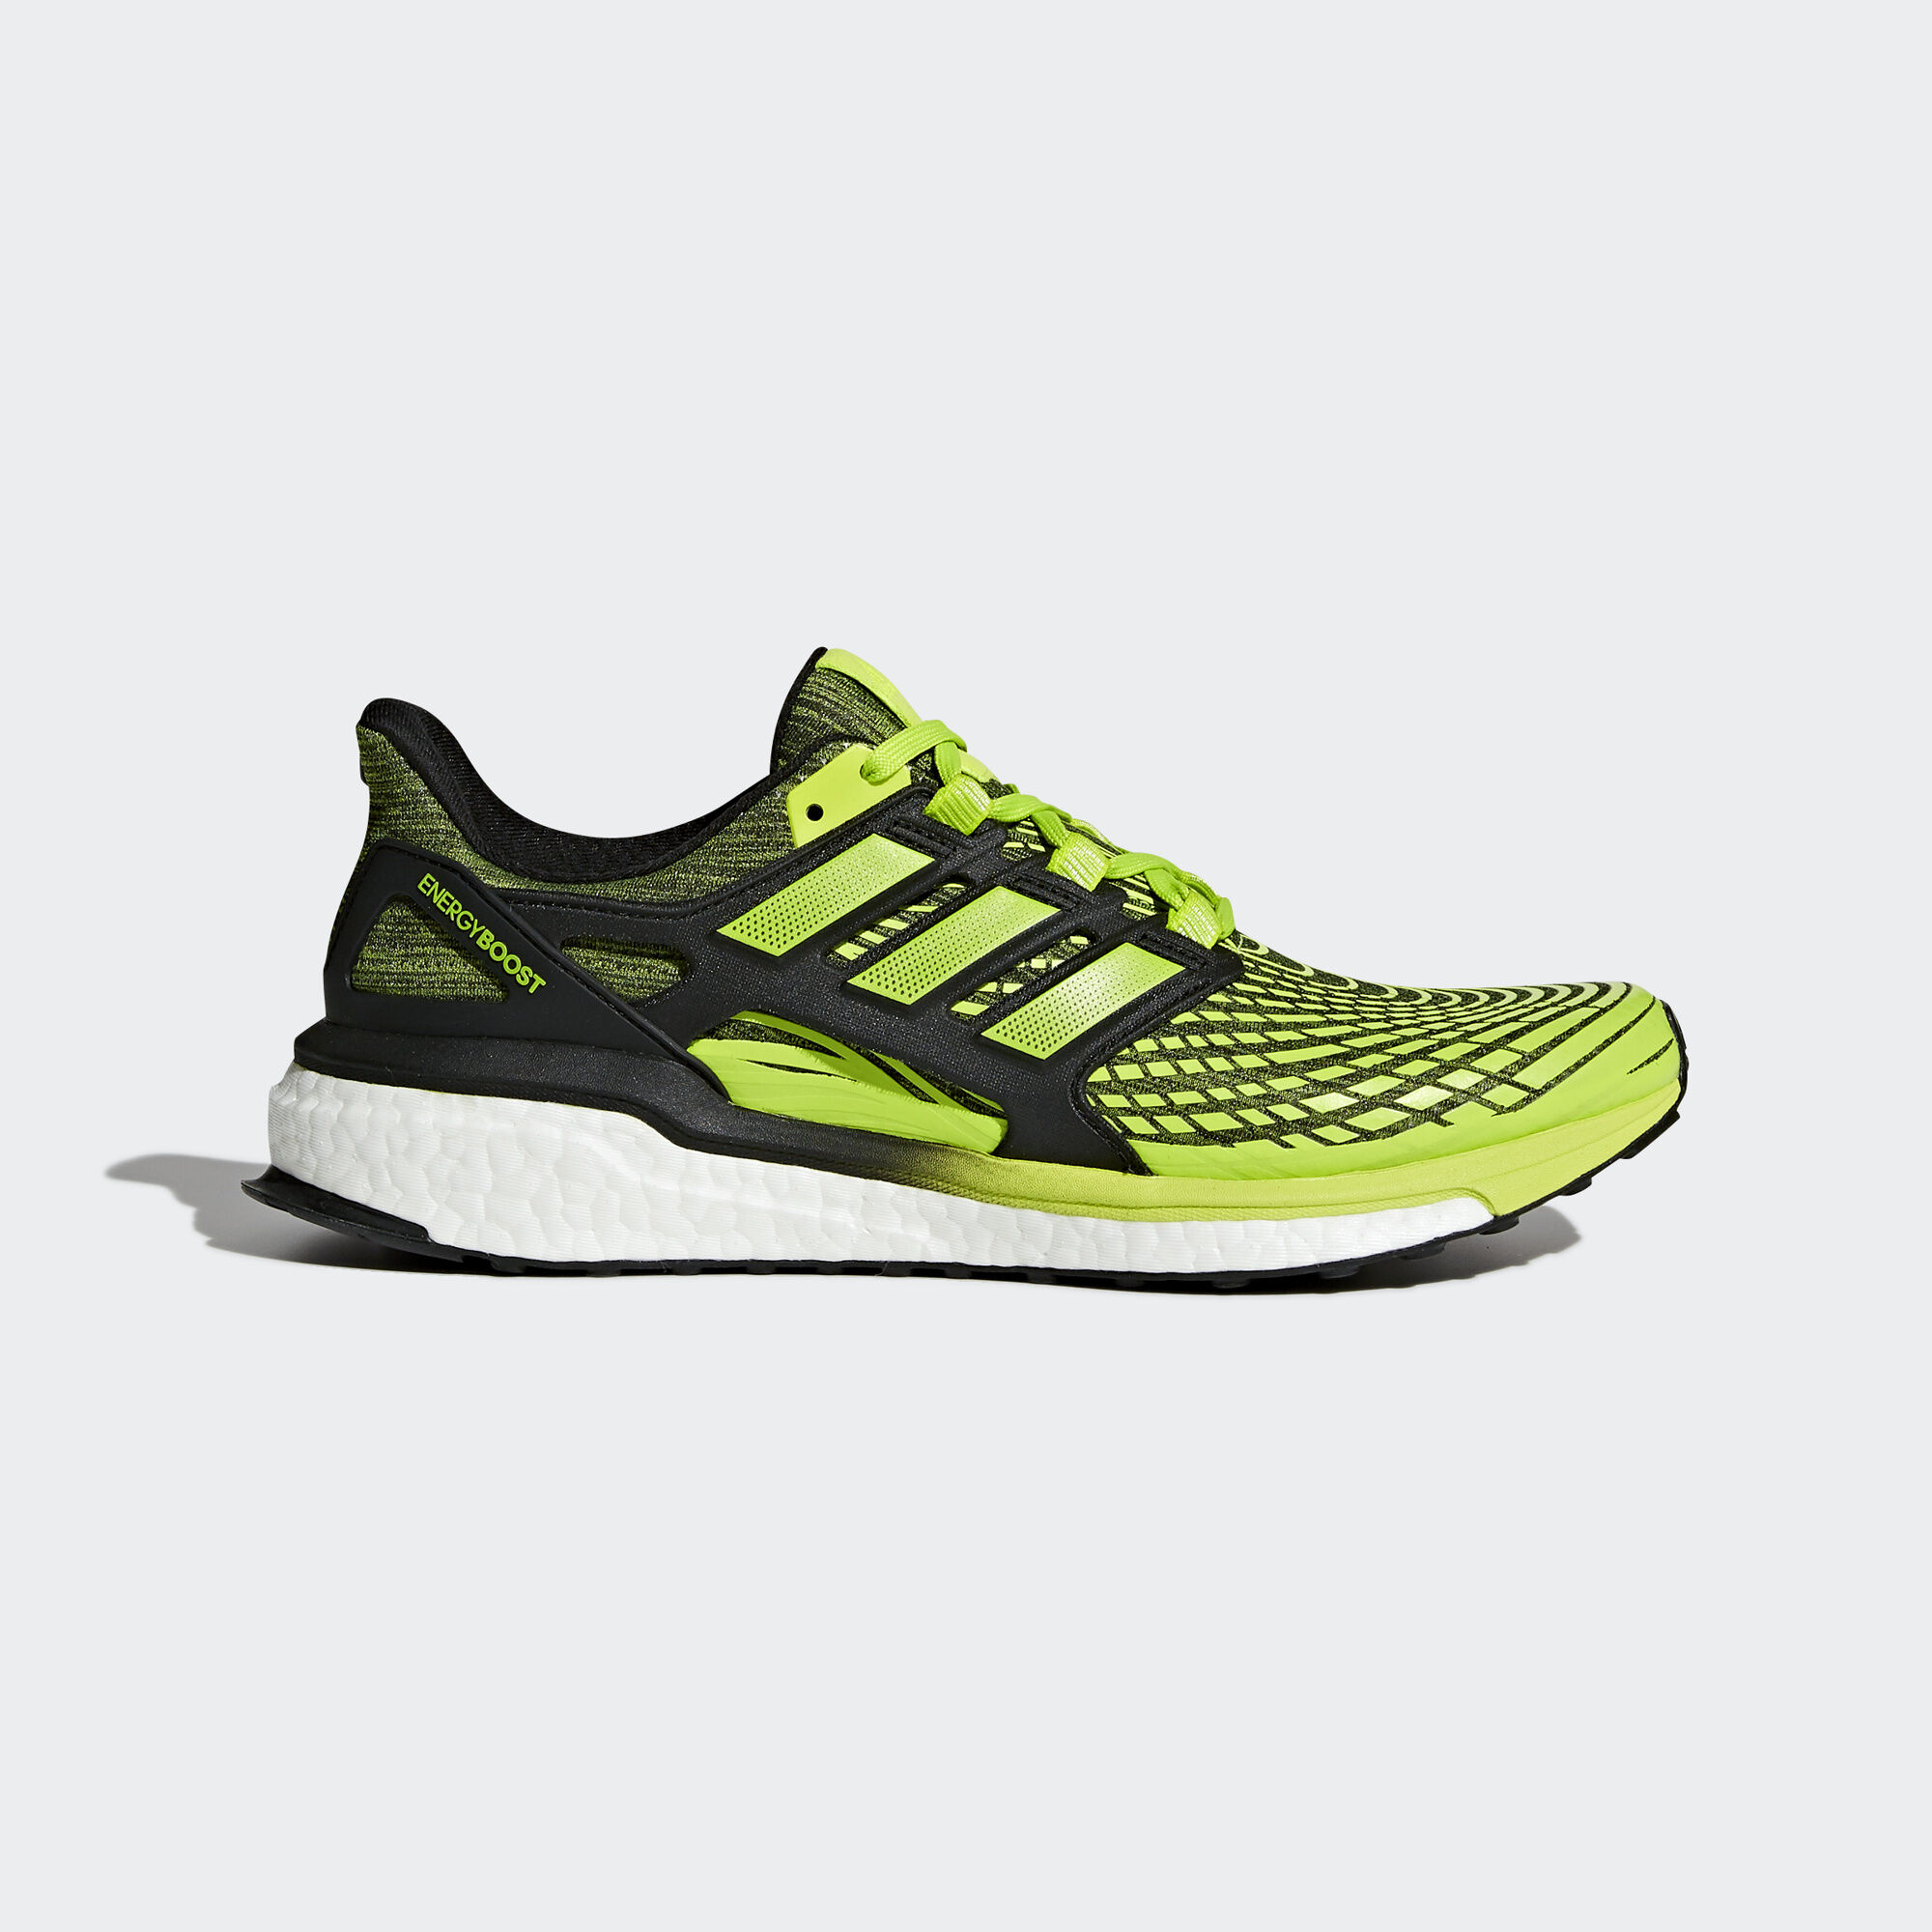 Adidas Techfit Energy Boost Shoes